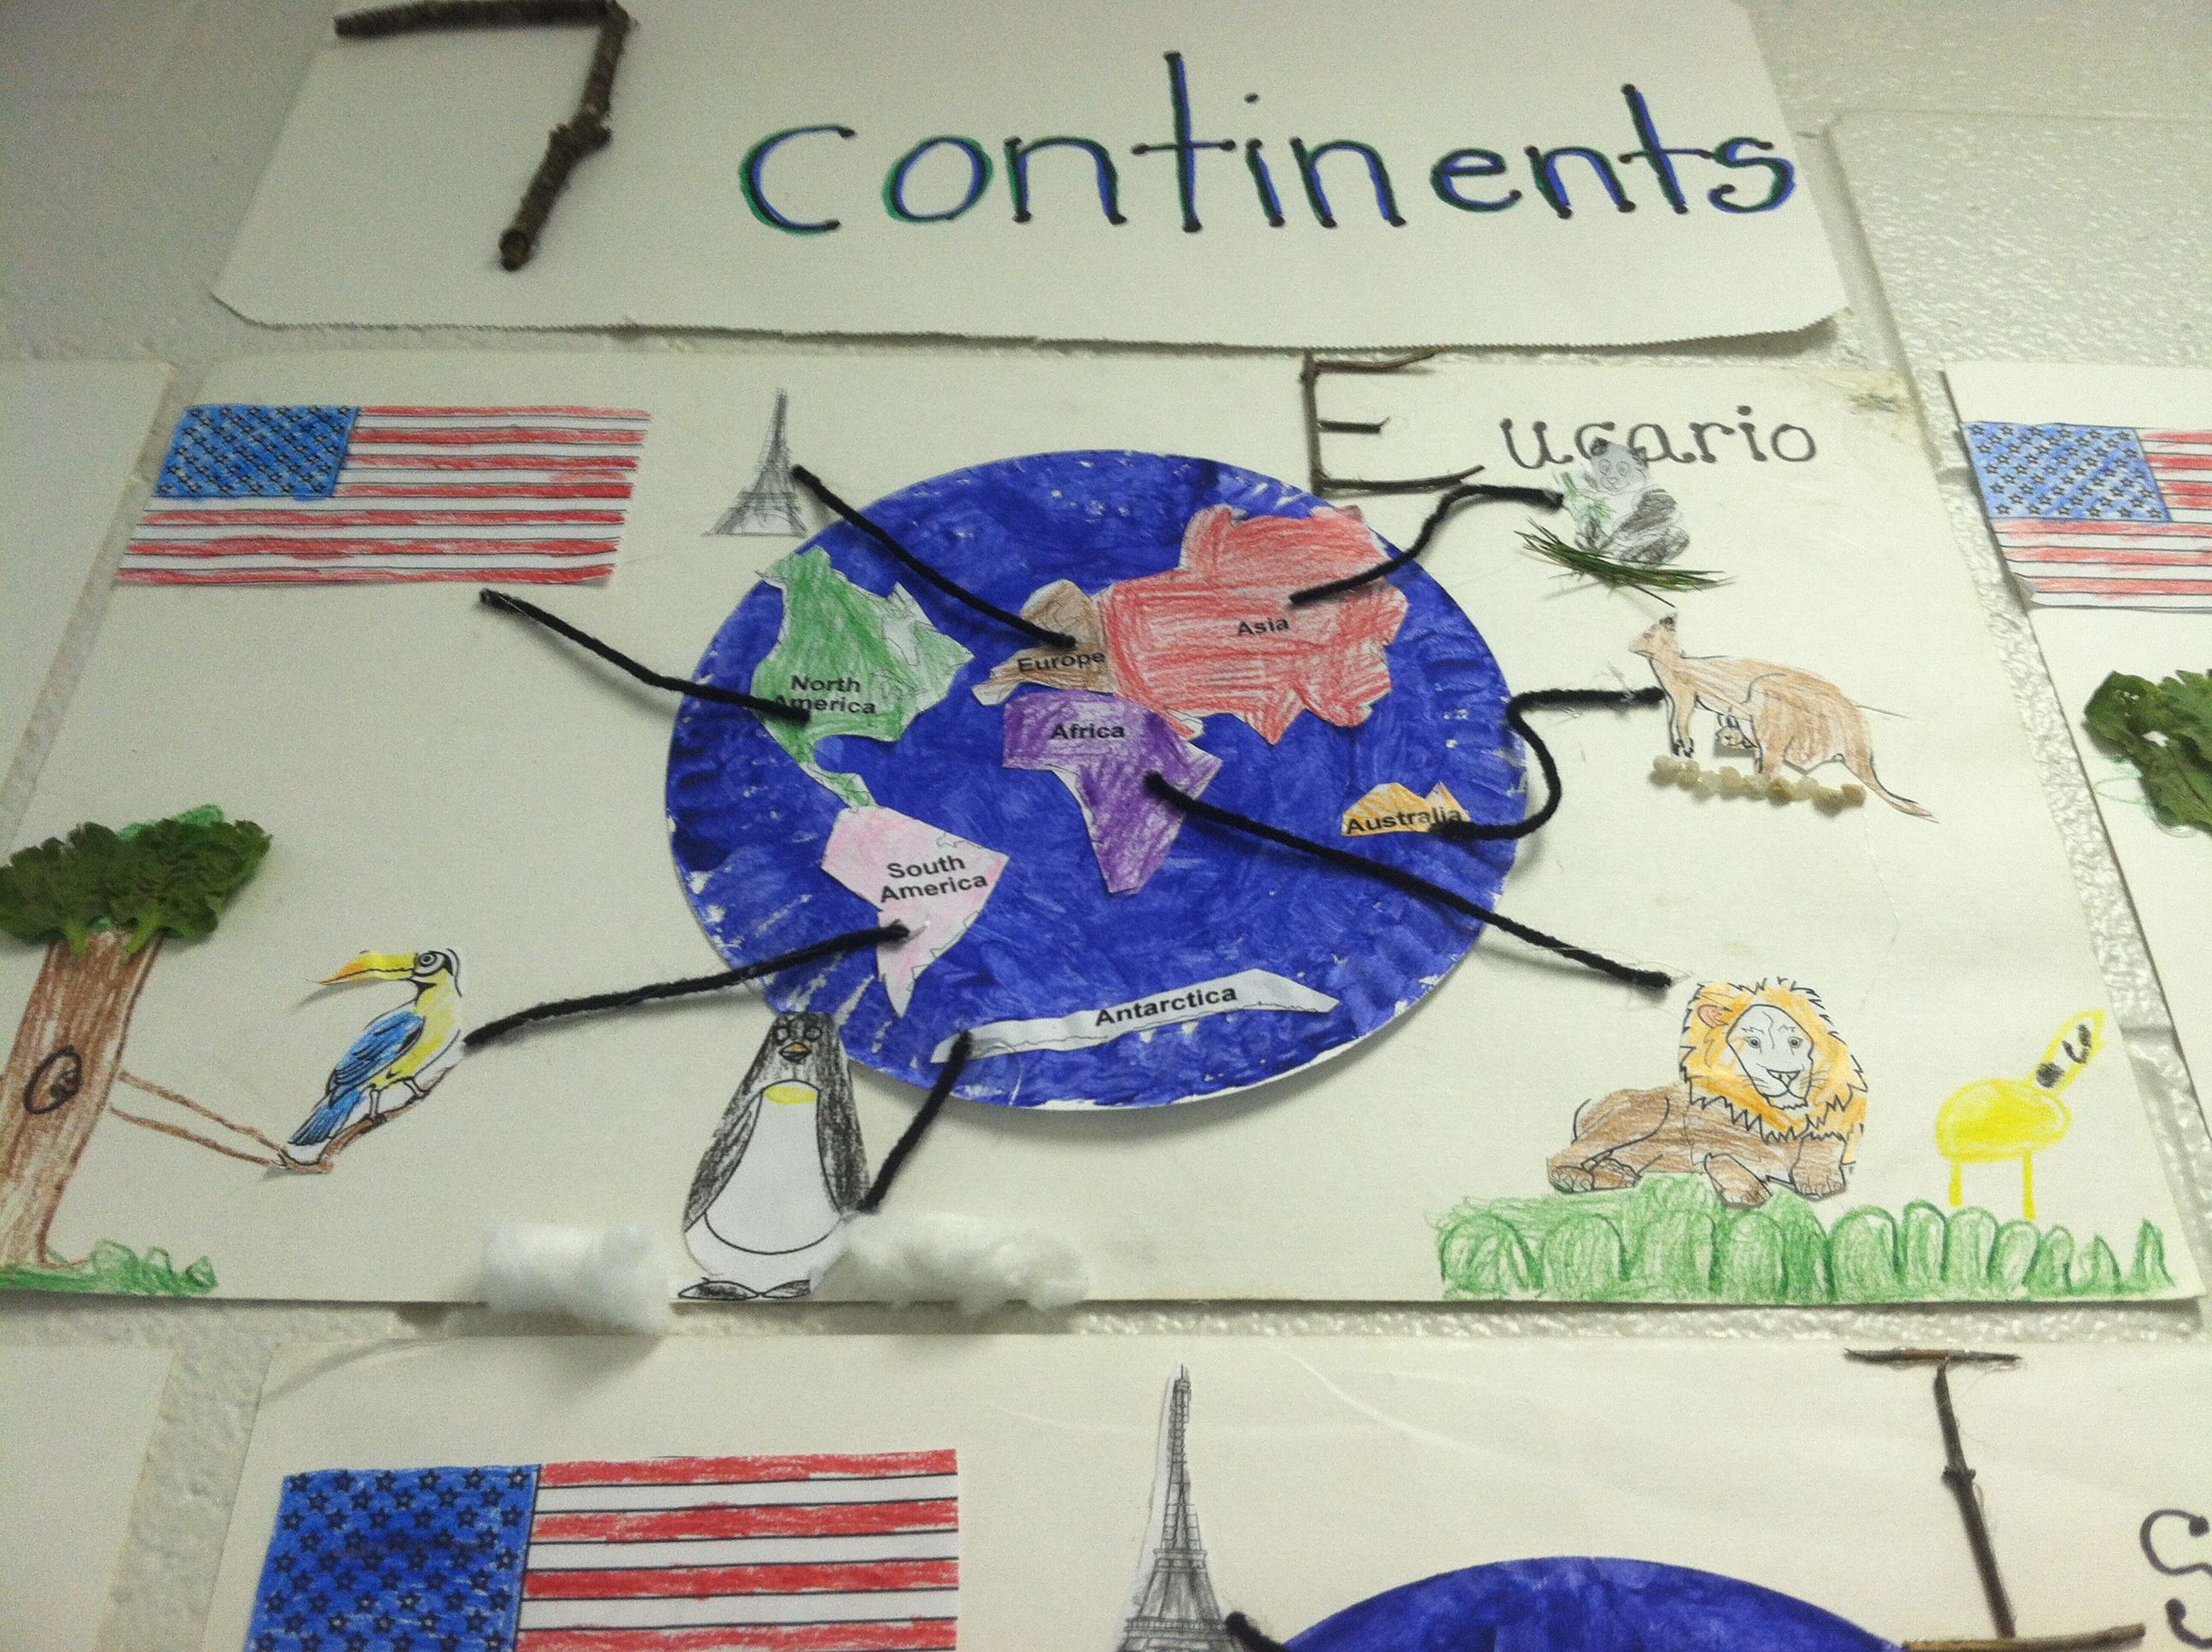 Continents Activity We Got Rocks For The Kangaroo Grass For The Panda Bear And Sticks To Make